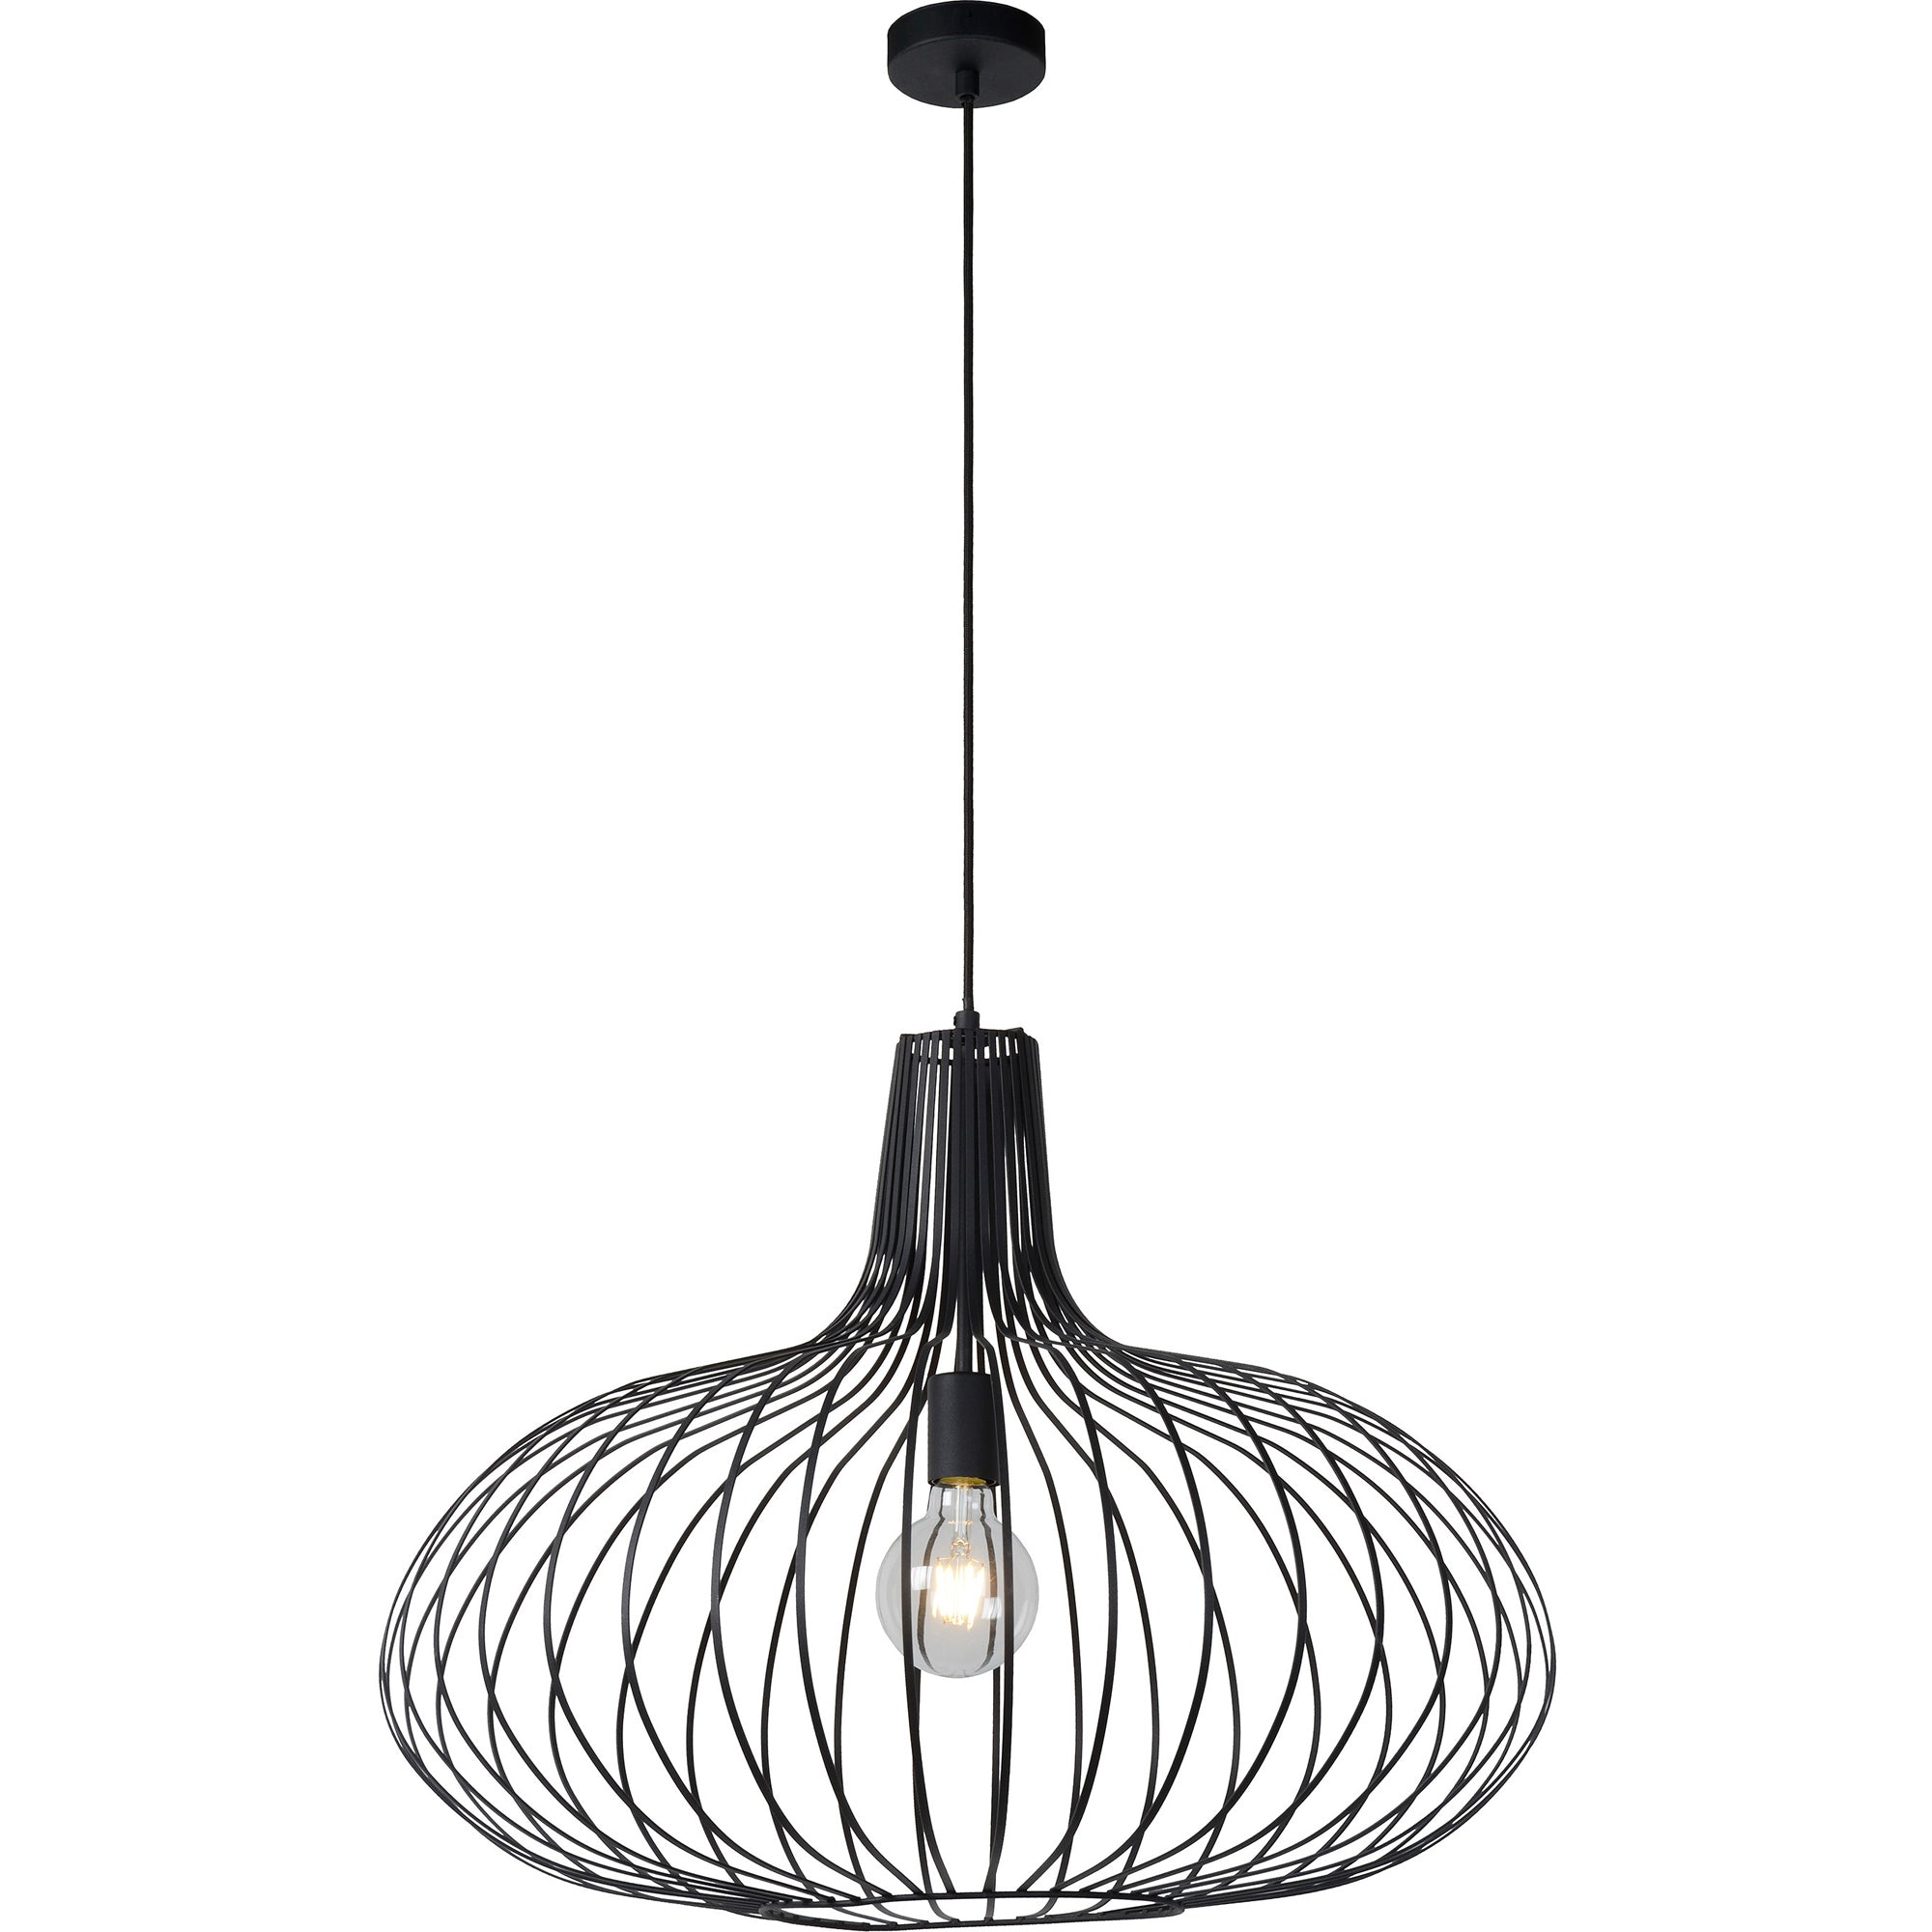 Twyla Iron Pendant Light